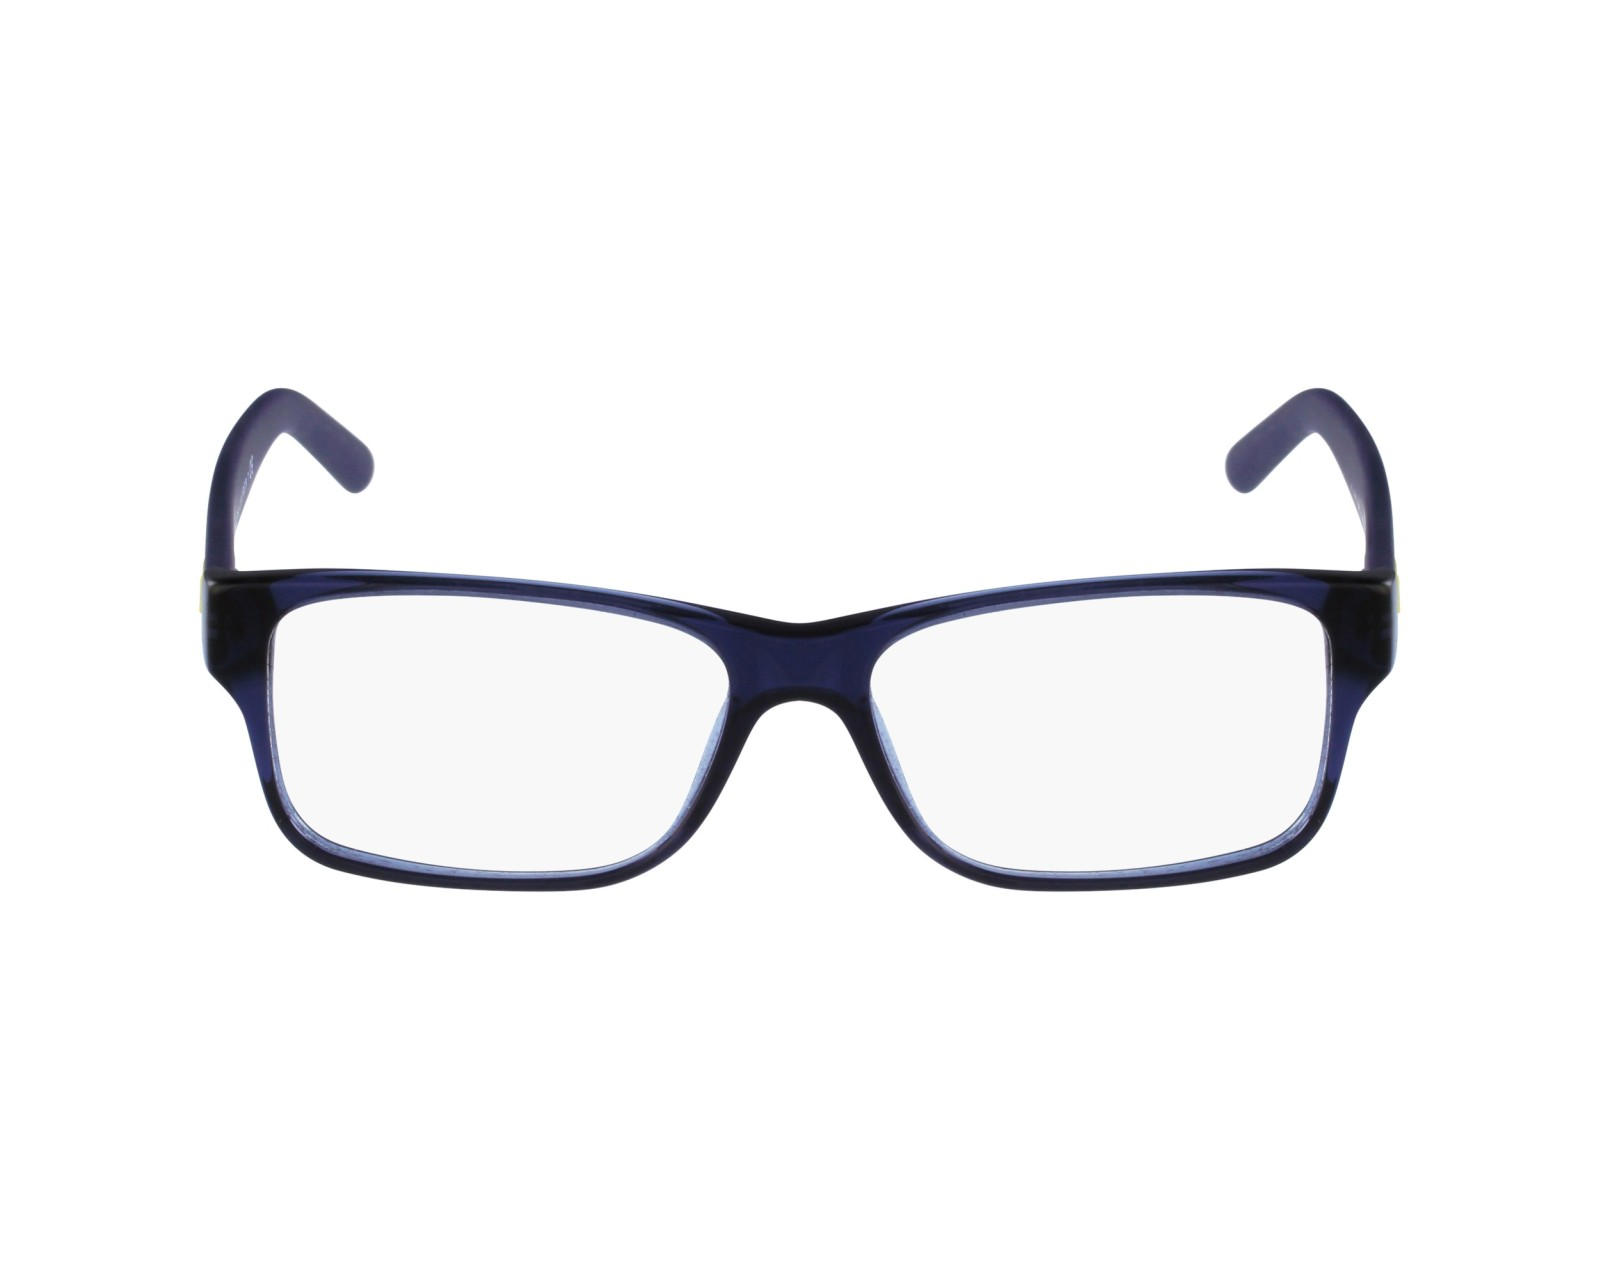 f143ae0a3f eyeglasses Polo Ralph Lauren PH-2117 5470 52-16 Blue profile view